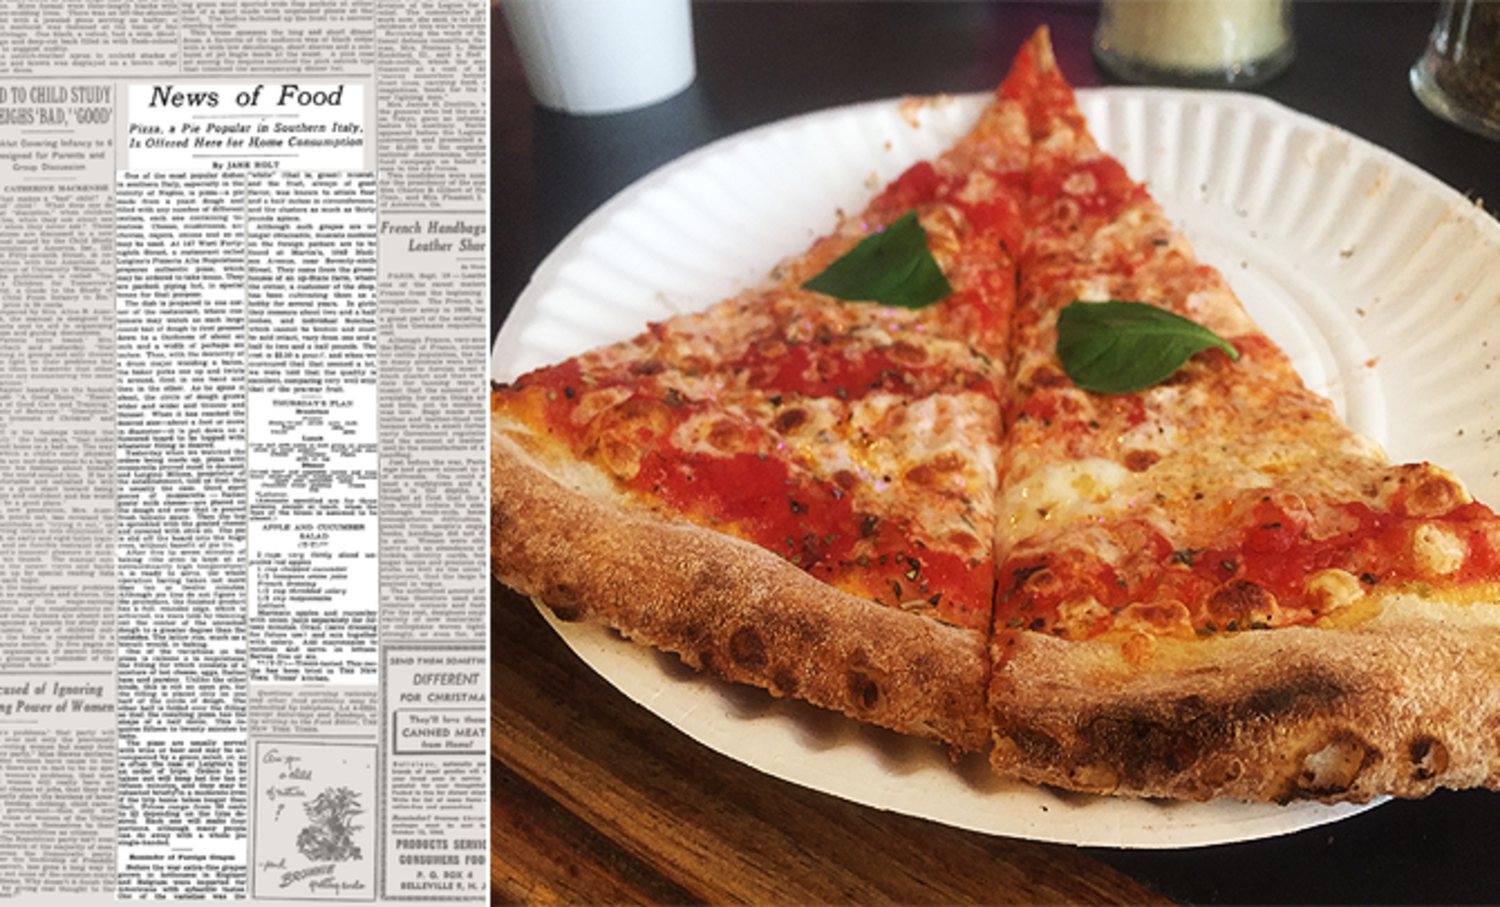 71 Years Ago, the New York Times Introduced Pizza to the City